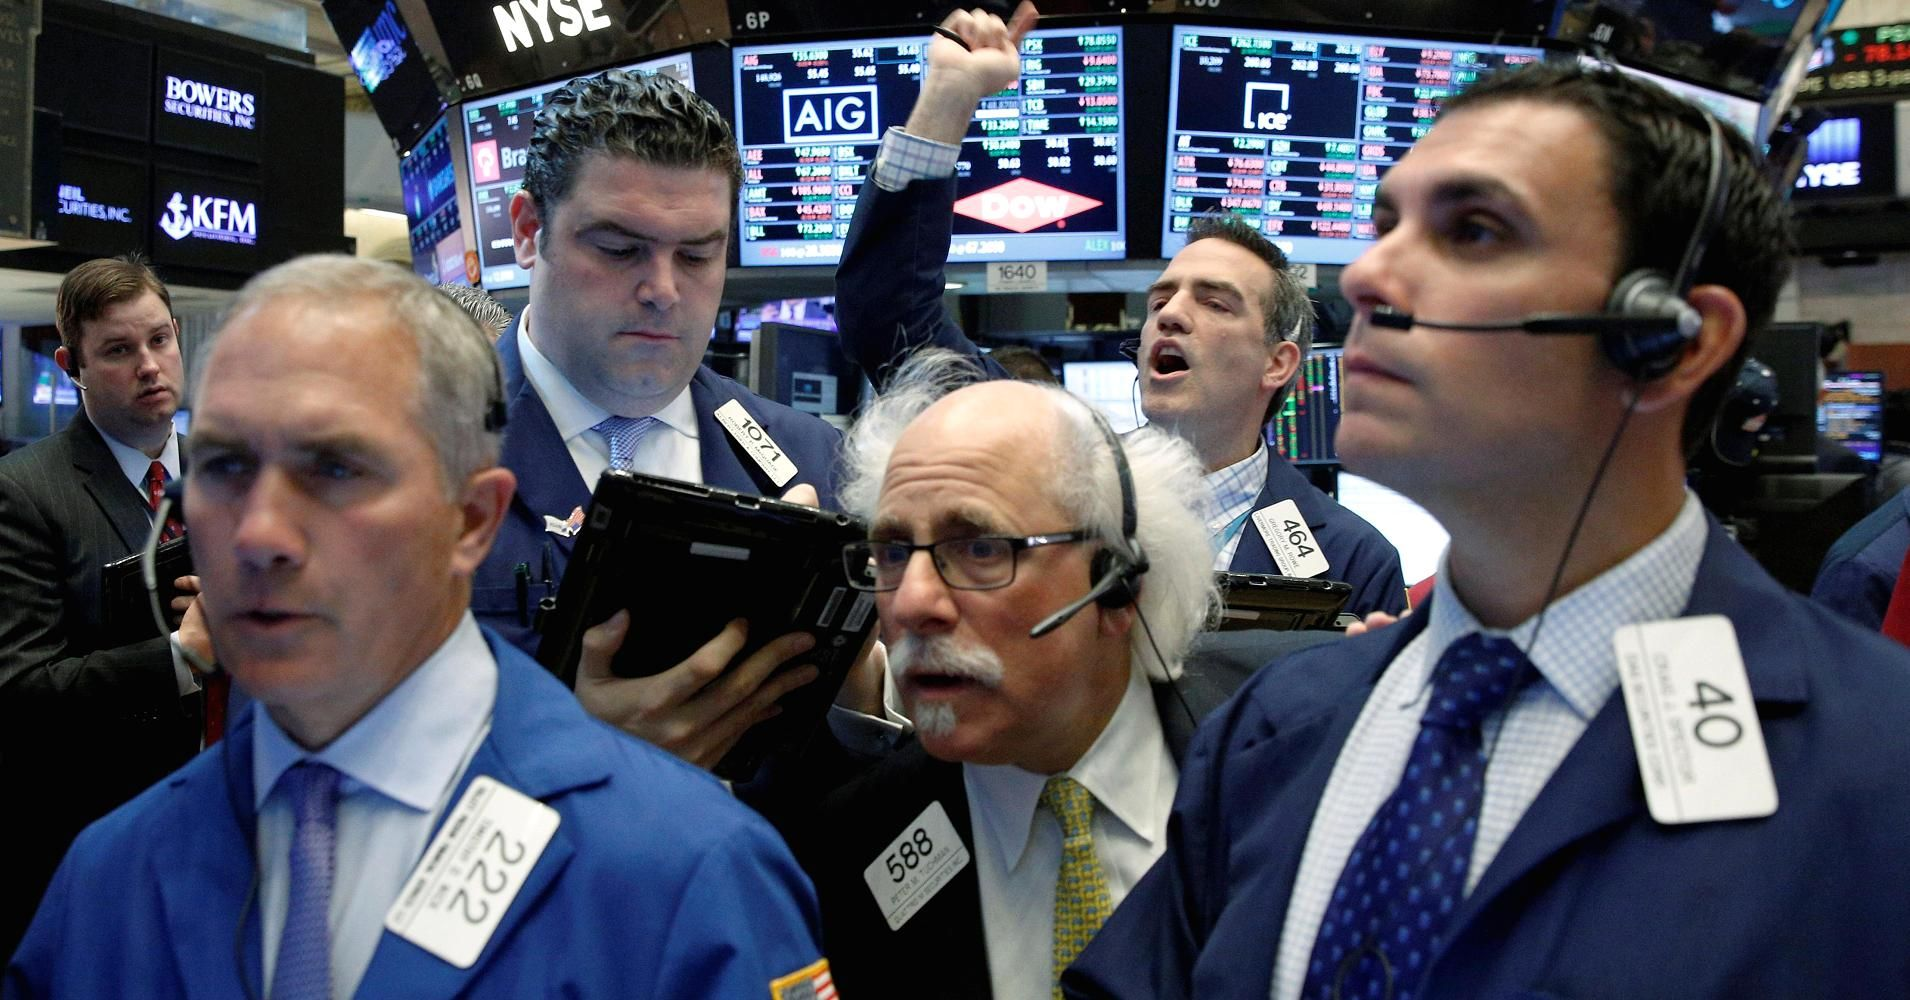 5.18.16 -The New York Stock Exchange experienced a 'critical' technical issue Wednesday, suspending trading on 199 ticker symbols.